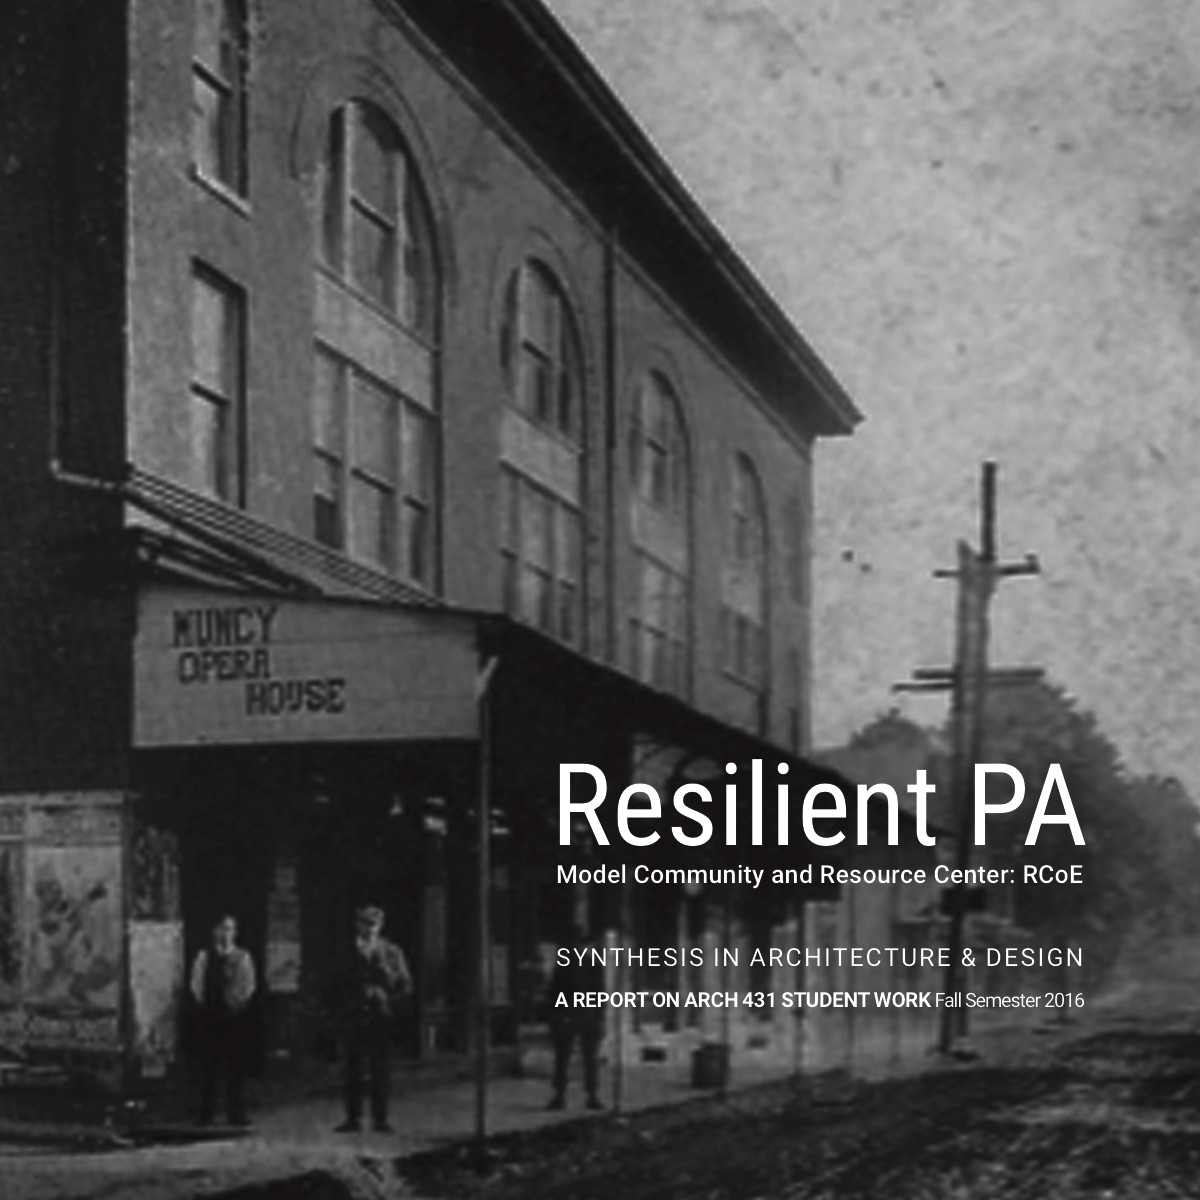 Link to Resilient PA Studio Partnership Book